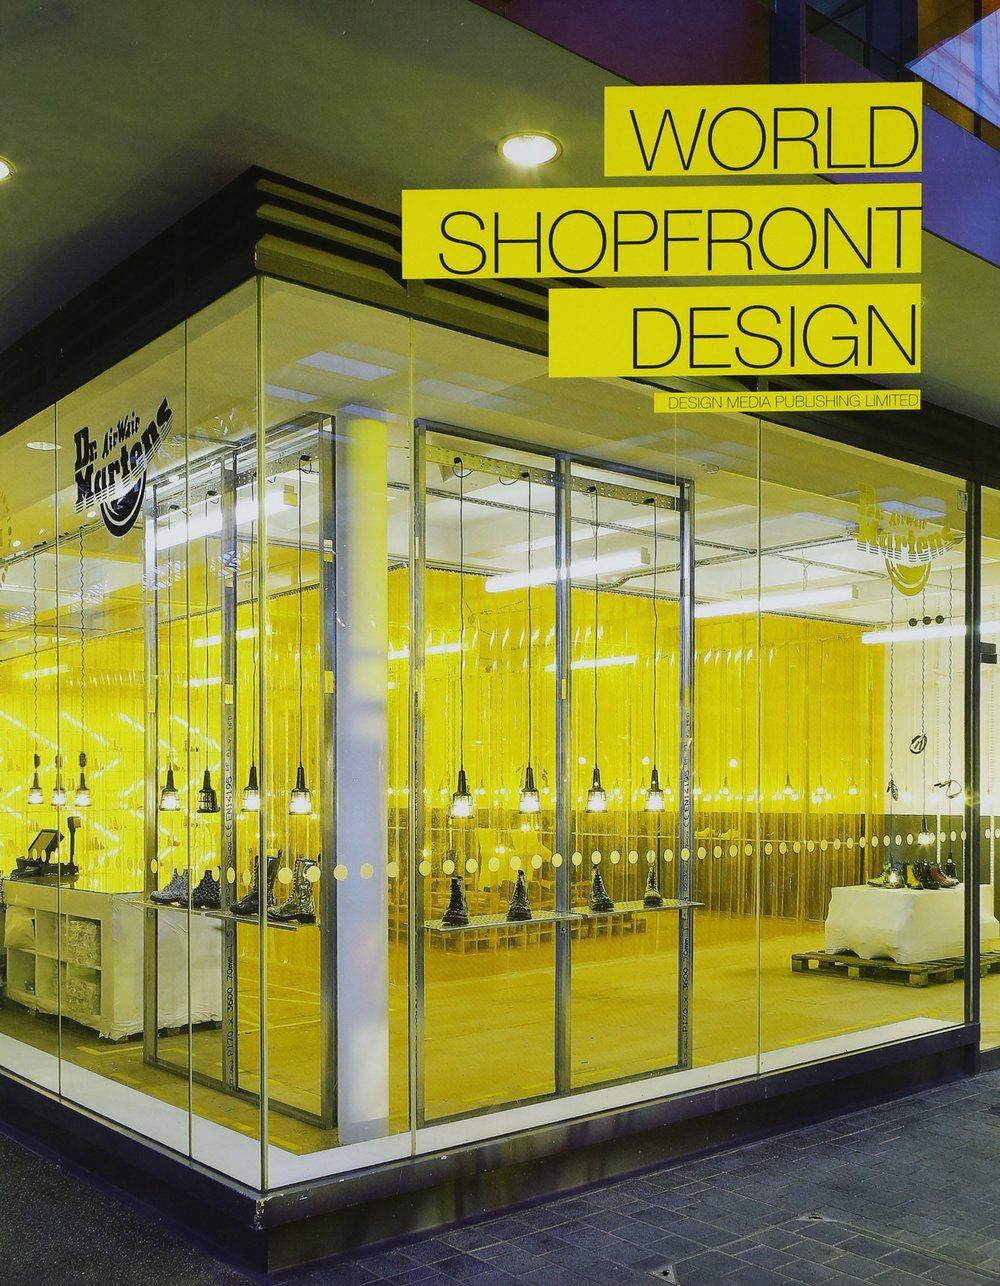 World+shopfront+design+sergio+mannino.jpg